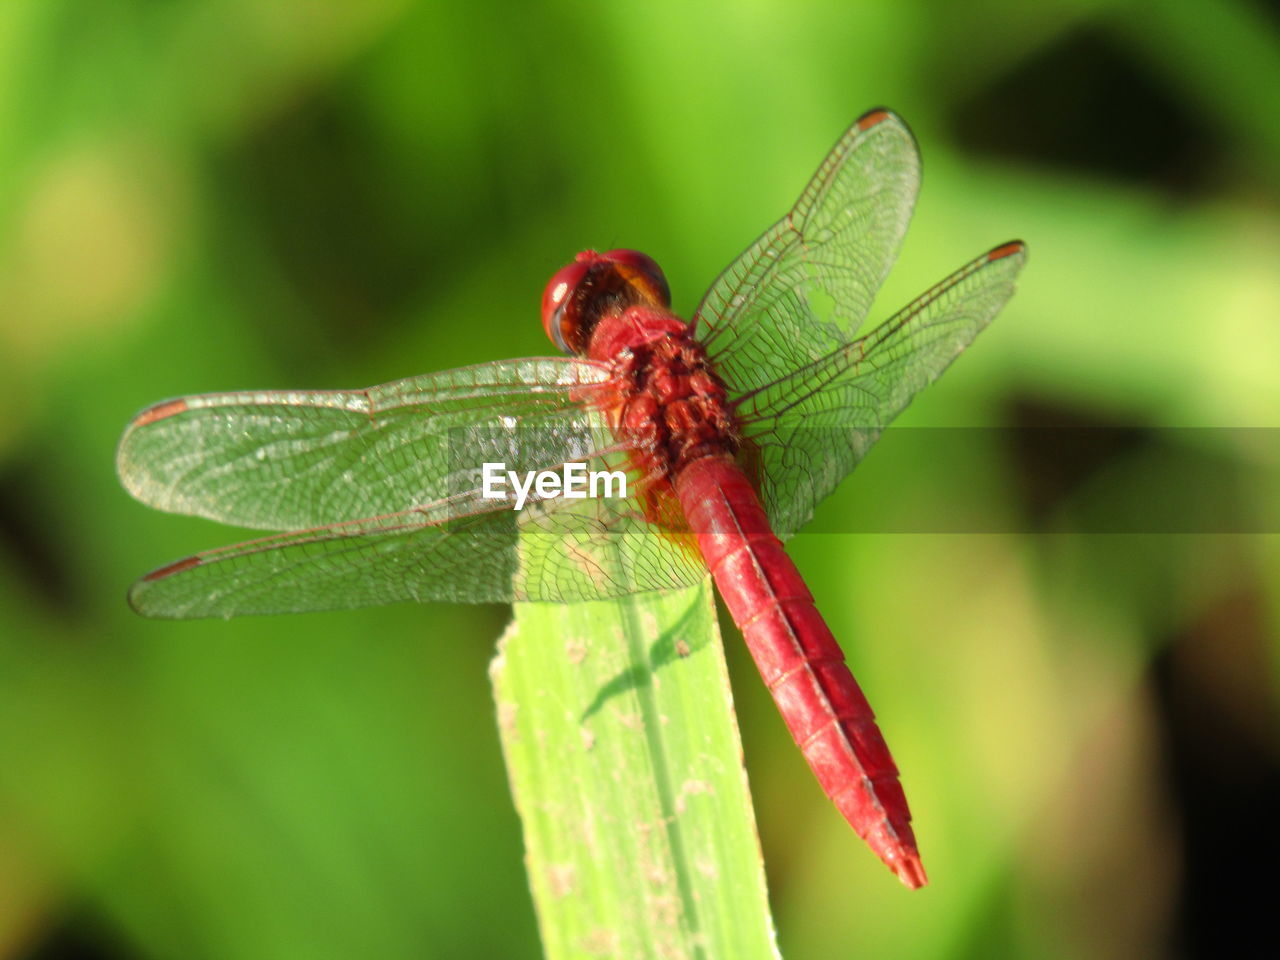 invertebrate, insect, animal wildlife, animal themes, animal, animals in the wild, one animal, plant part, leaf, green color, close-up, nature, plant, focus on foreground, no people, day, dragonfly, zoology, animal wing, outdoors